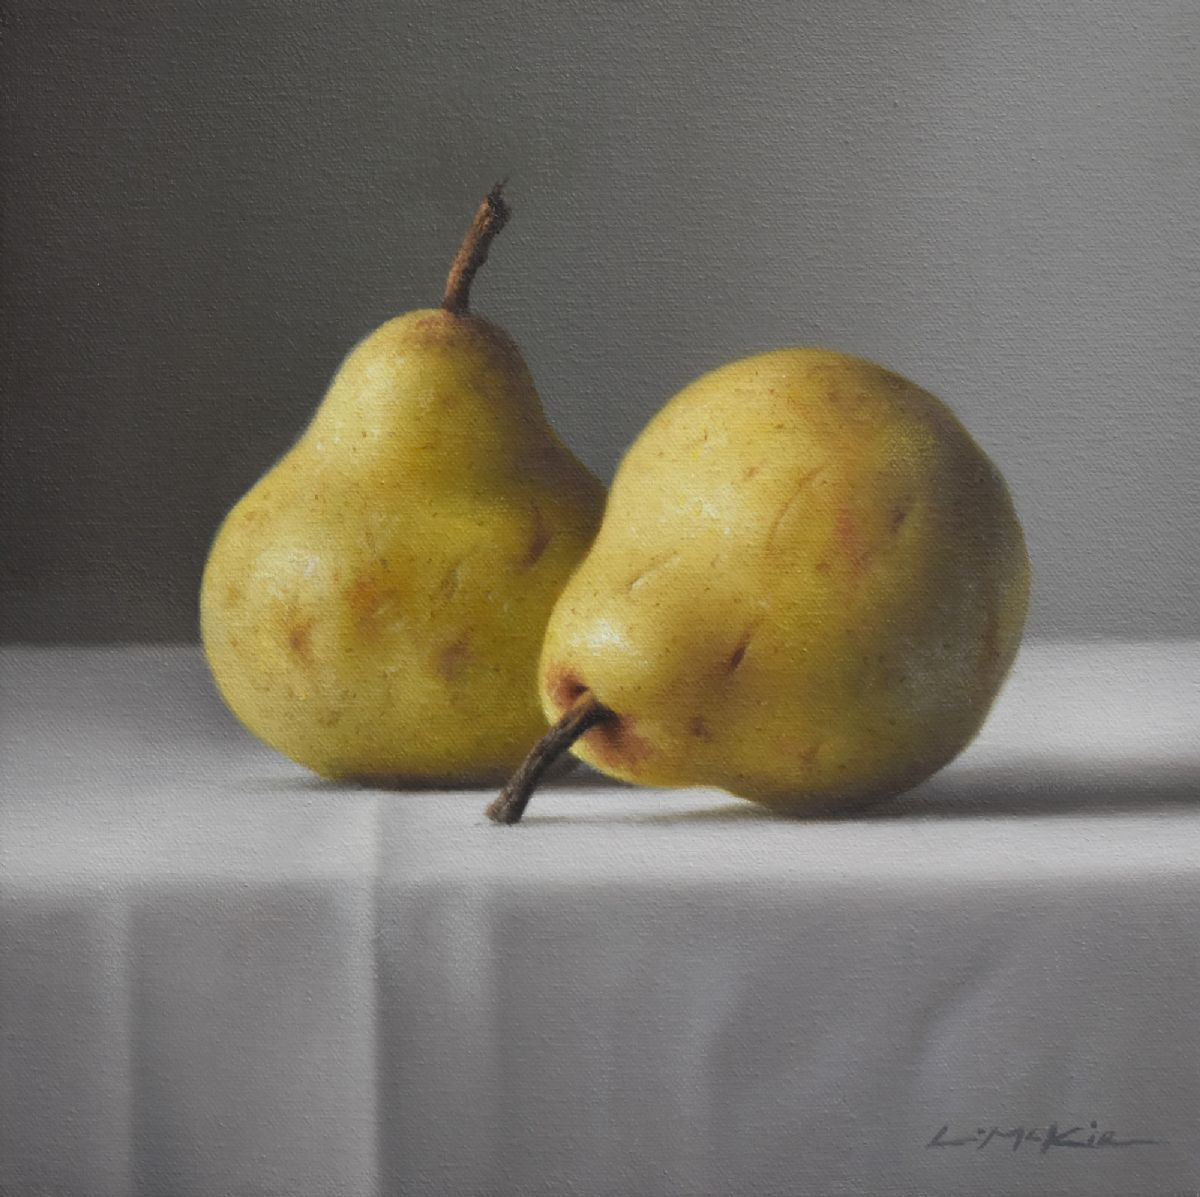 Two Pears on White Cloth